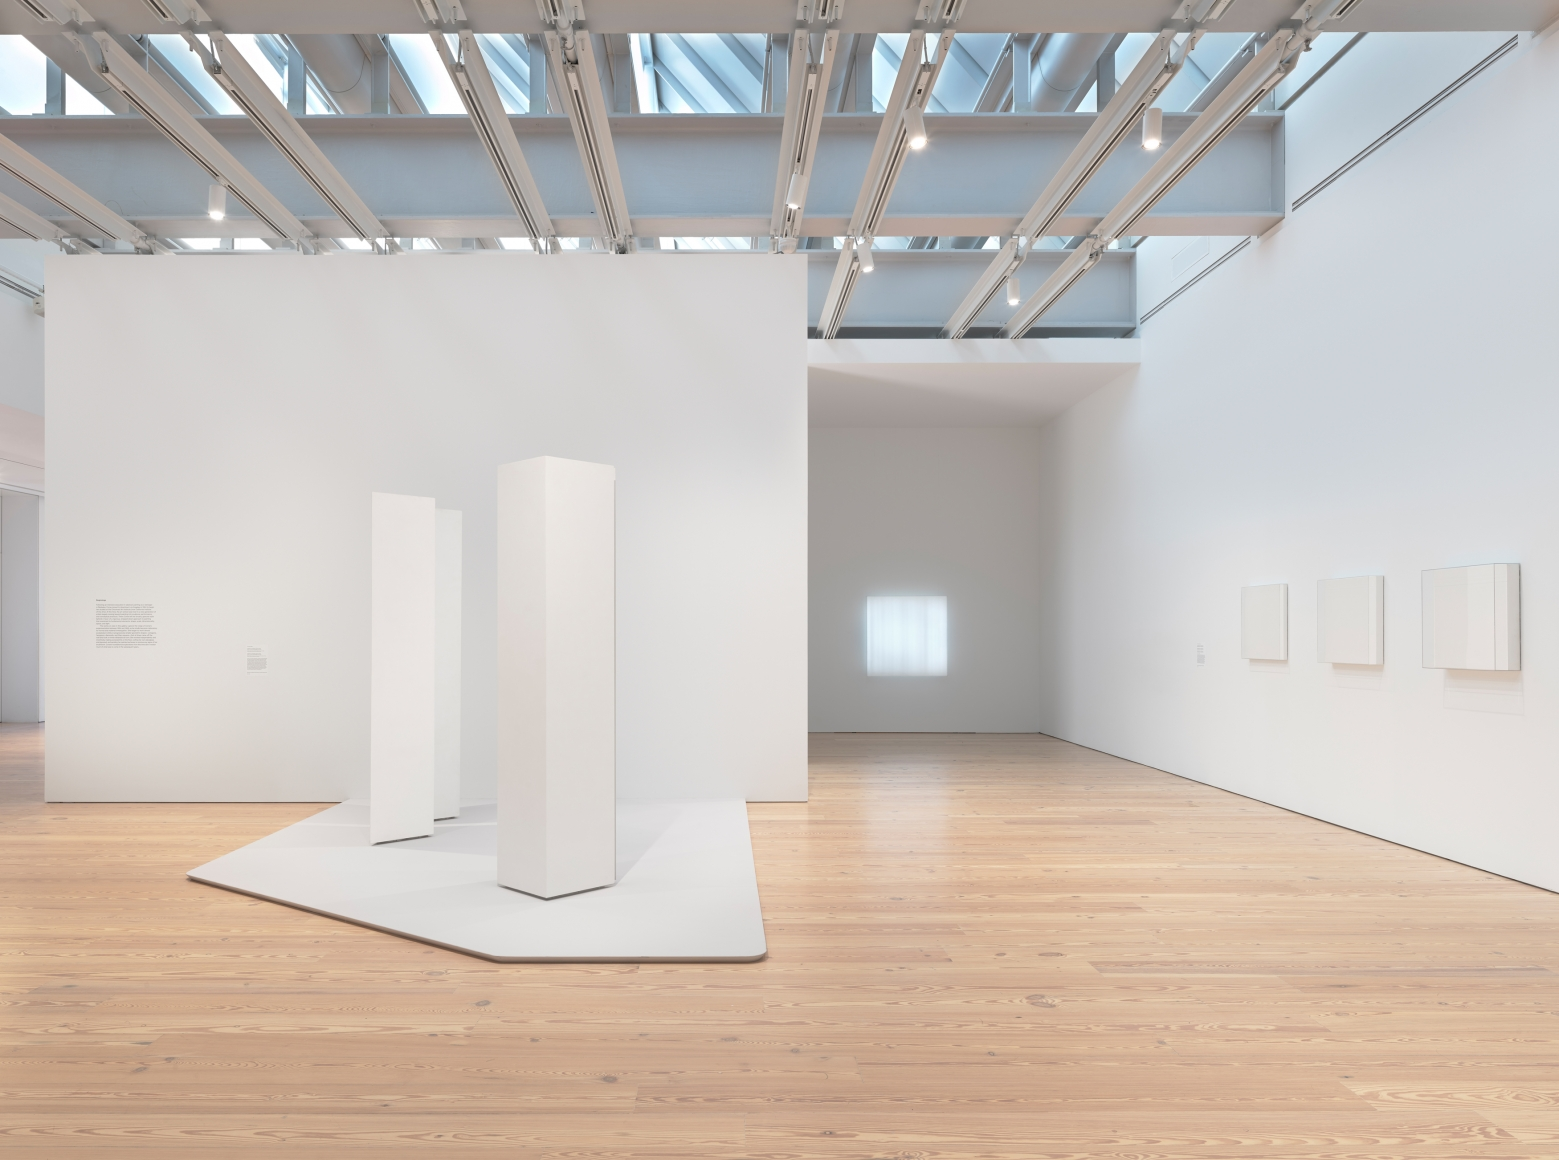 Installation photo of the 2018 exhibition Mary Corse: A Survey in Light at the Whitney Museum of American Art, New York, view 2